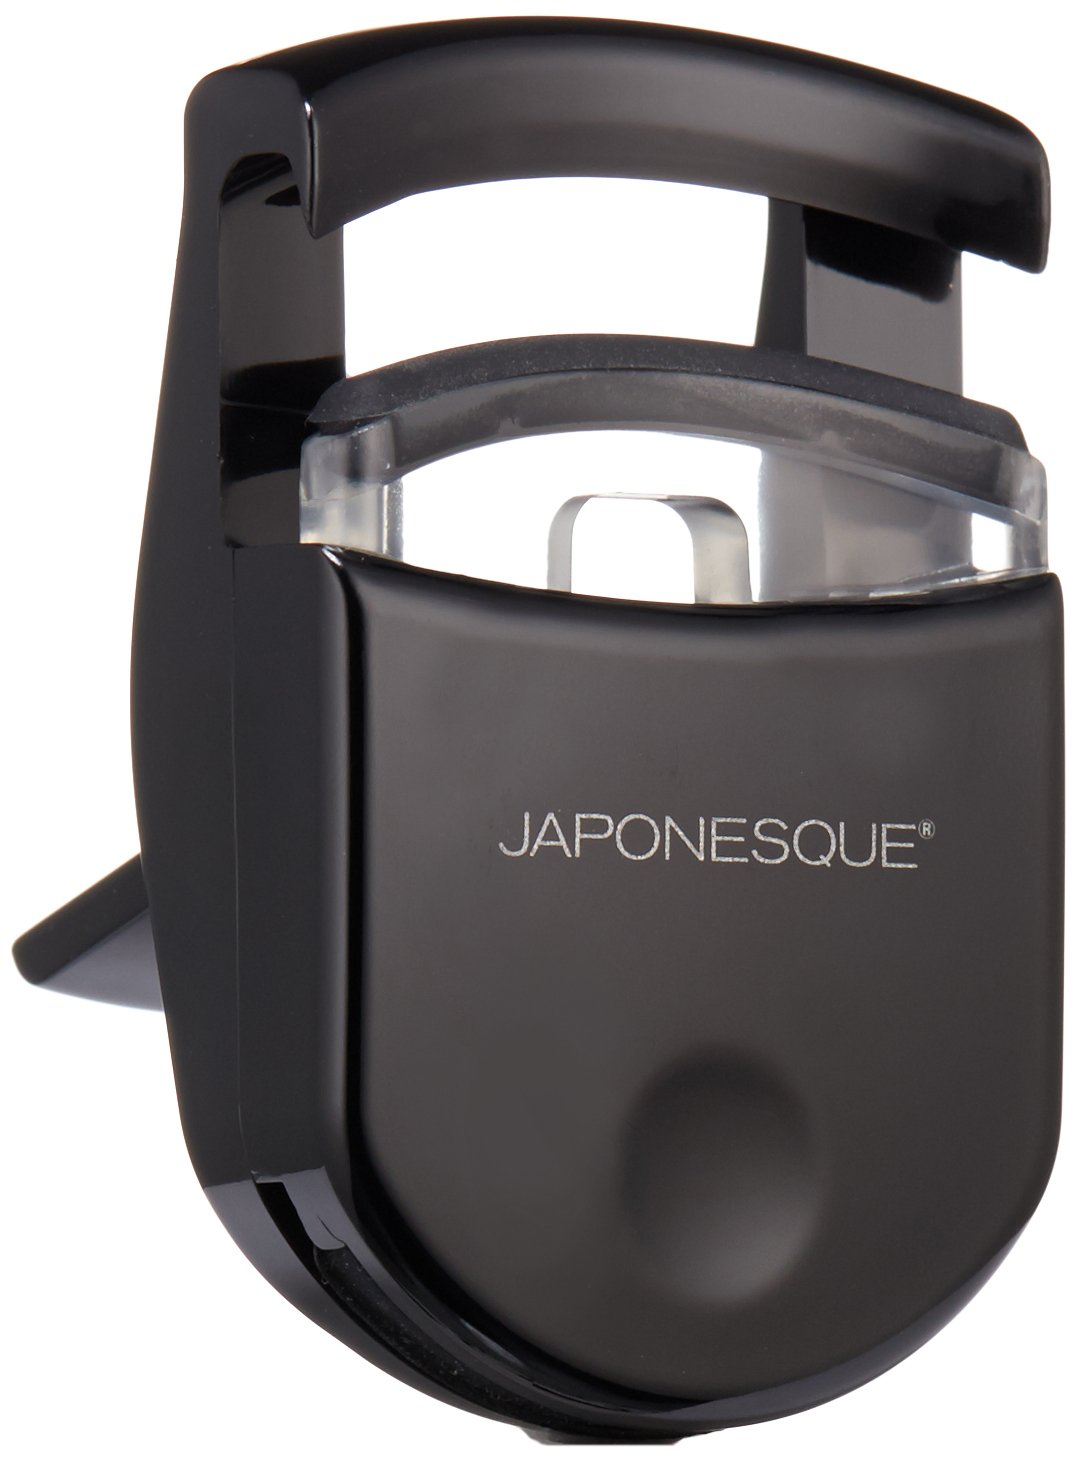 Amazon Japonesque Go Curl Eyelash Curler Black Luxury Beauty